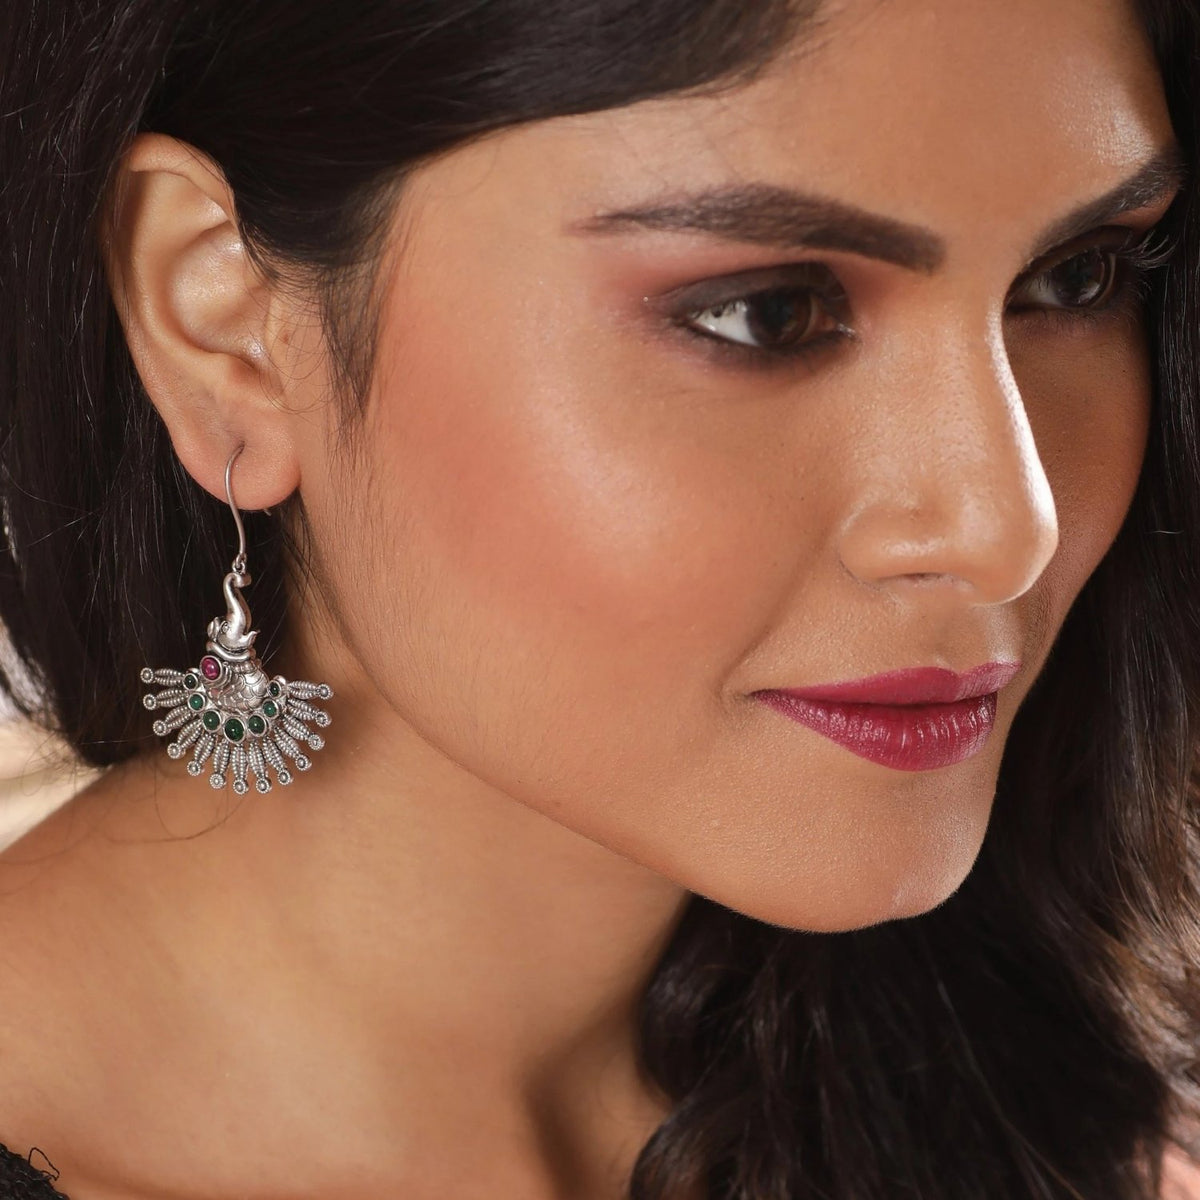 Mayra Antique Earrings